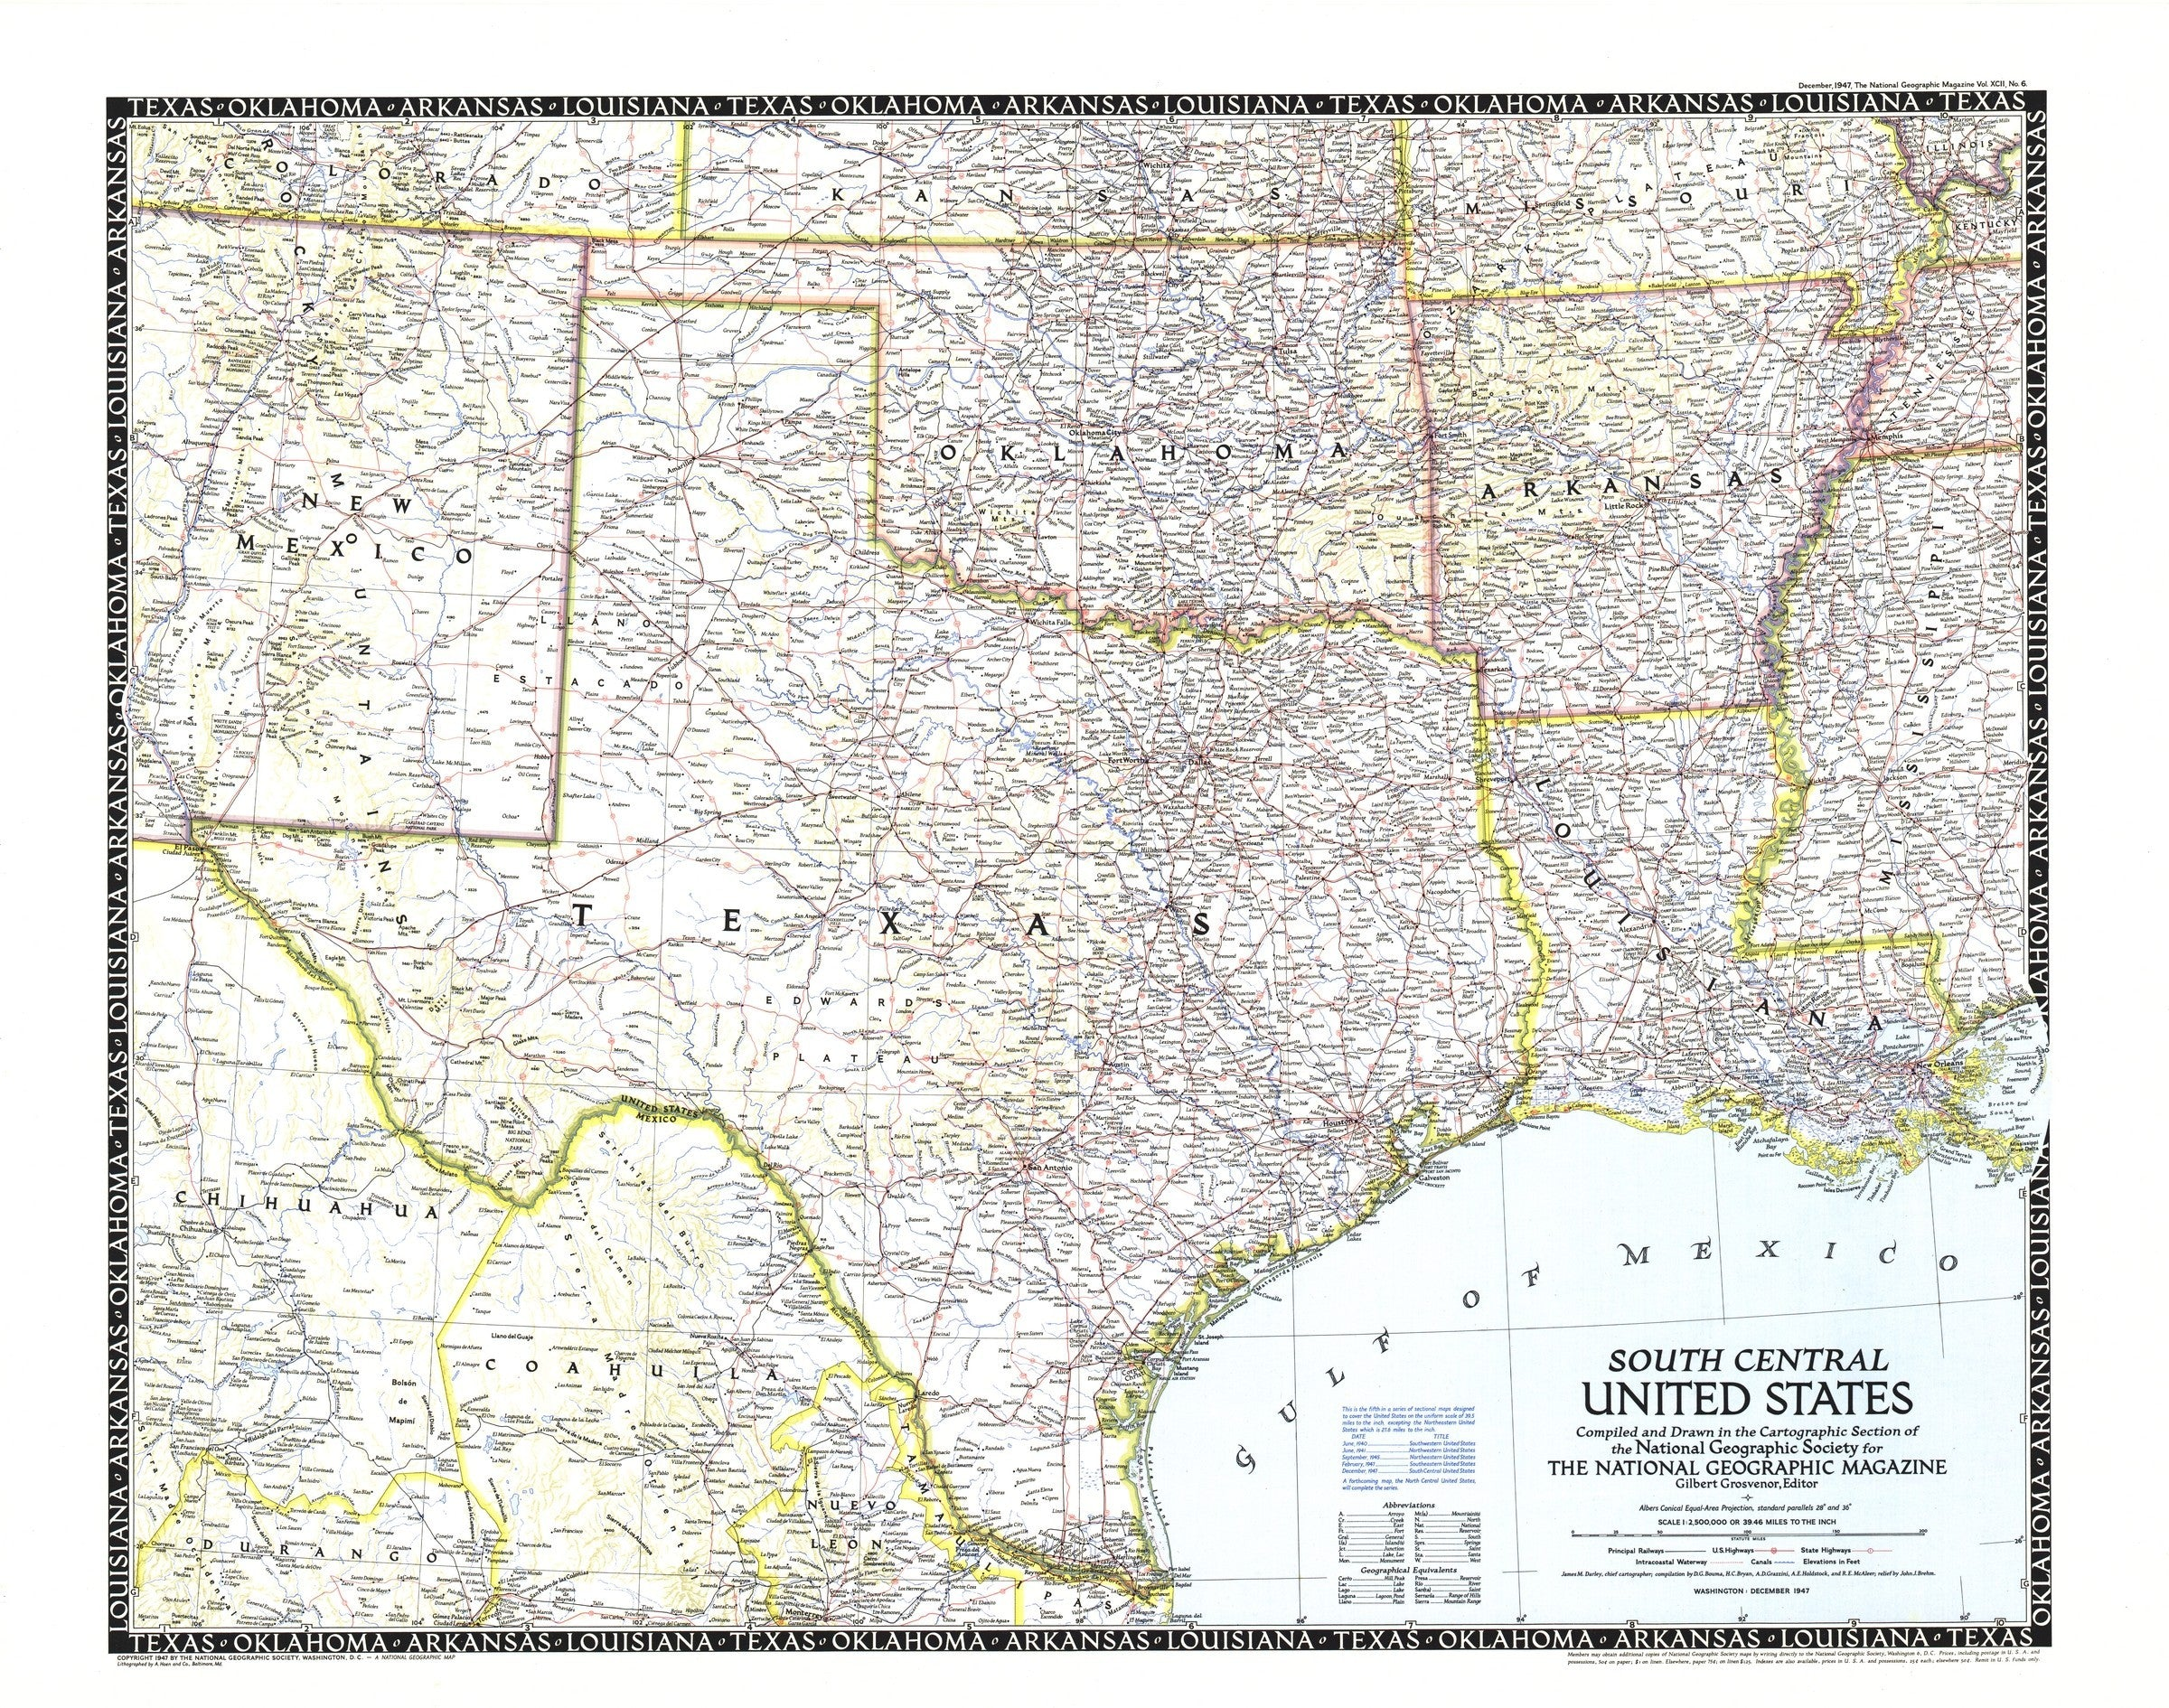 Picture of: South Central United States Map 1947 Maps Com Com